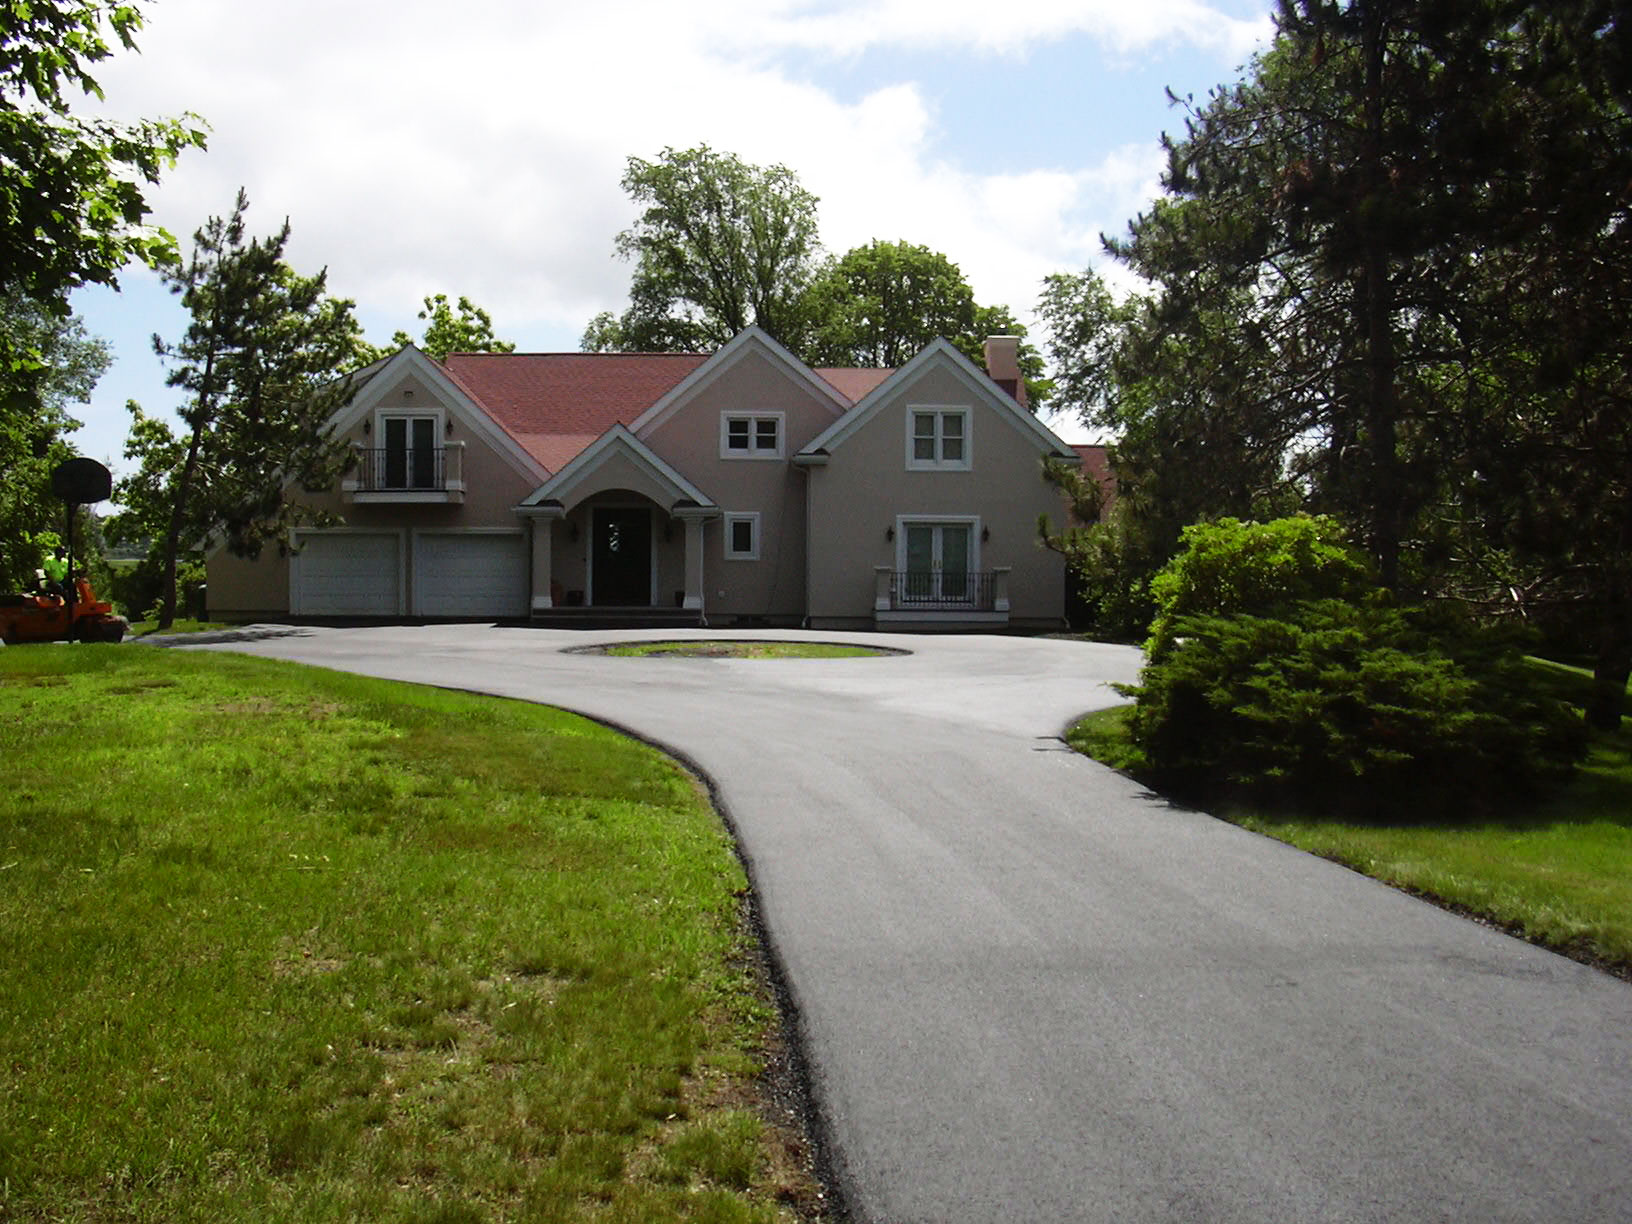 The front view of the same house and repaved driveway in Salem N.H.